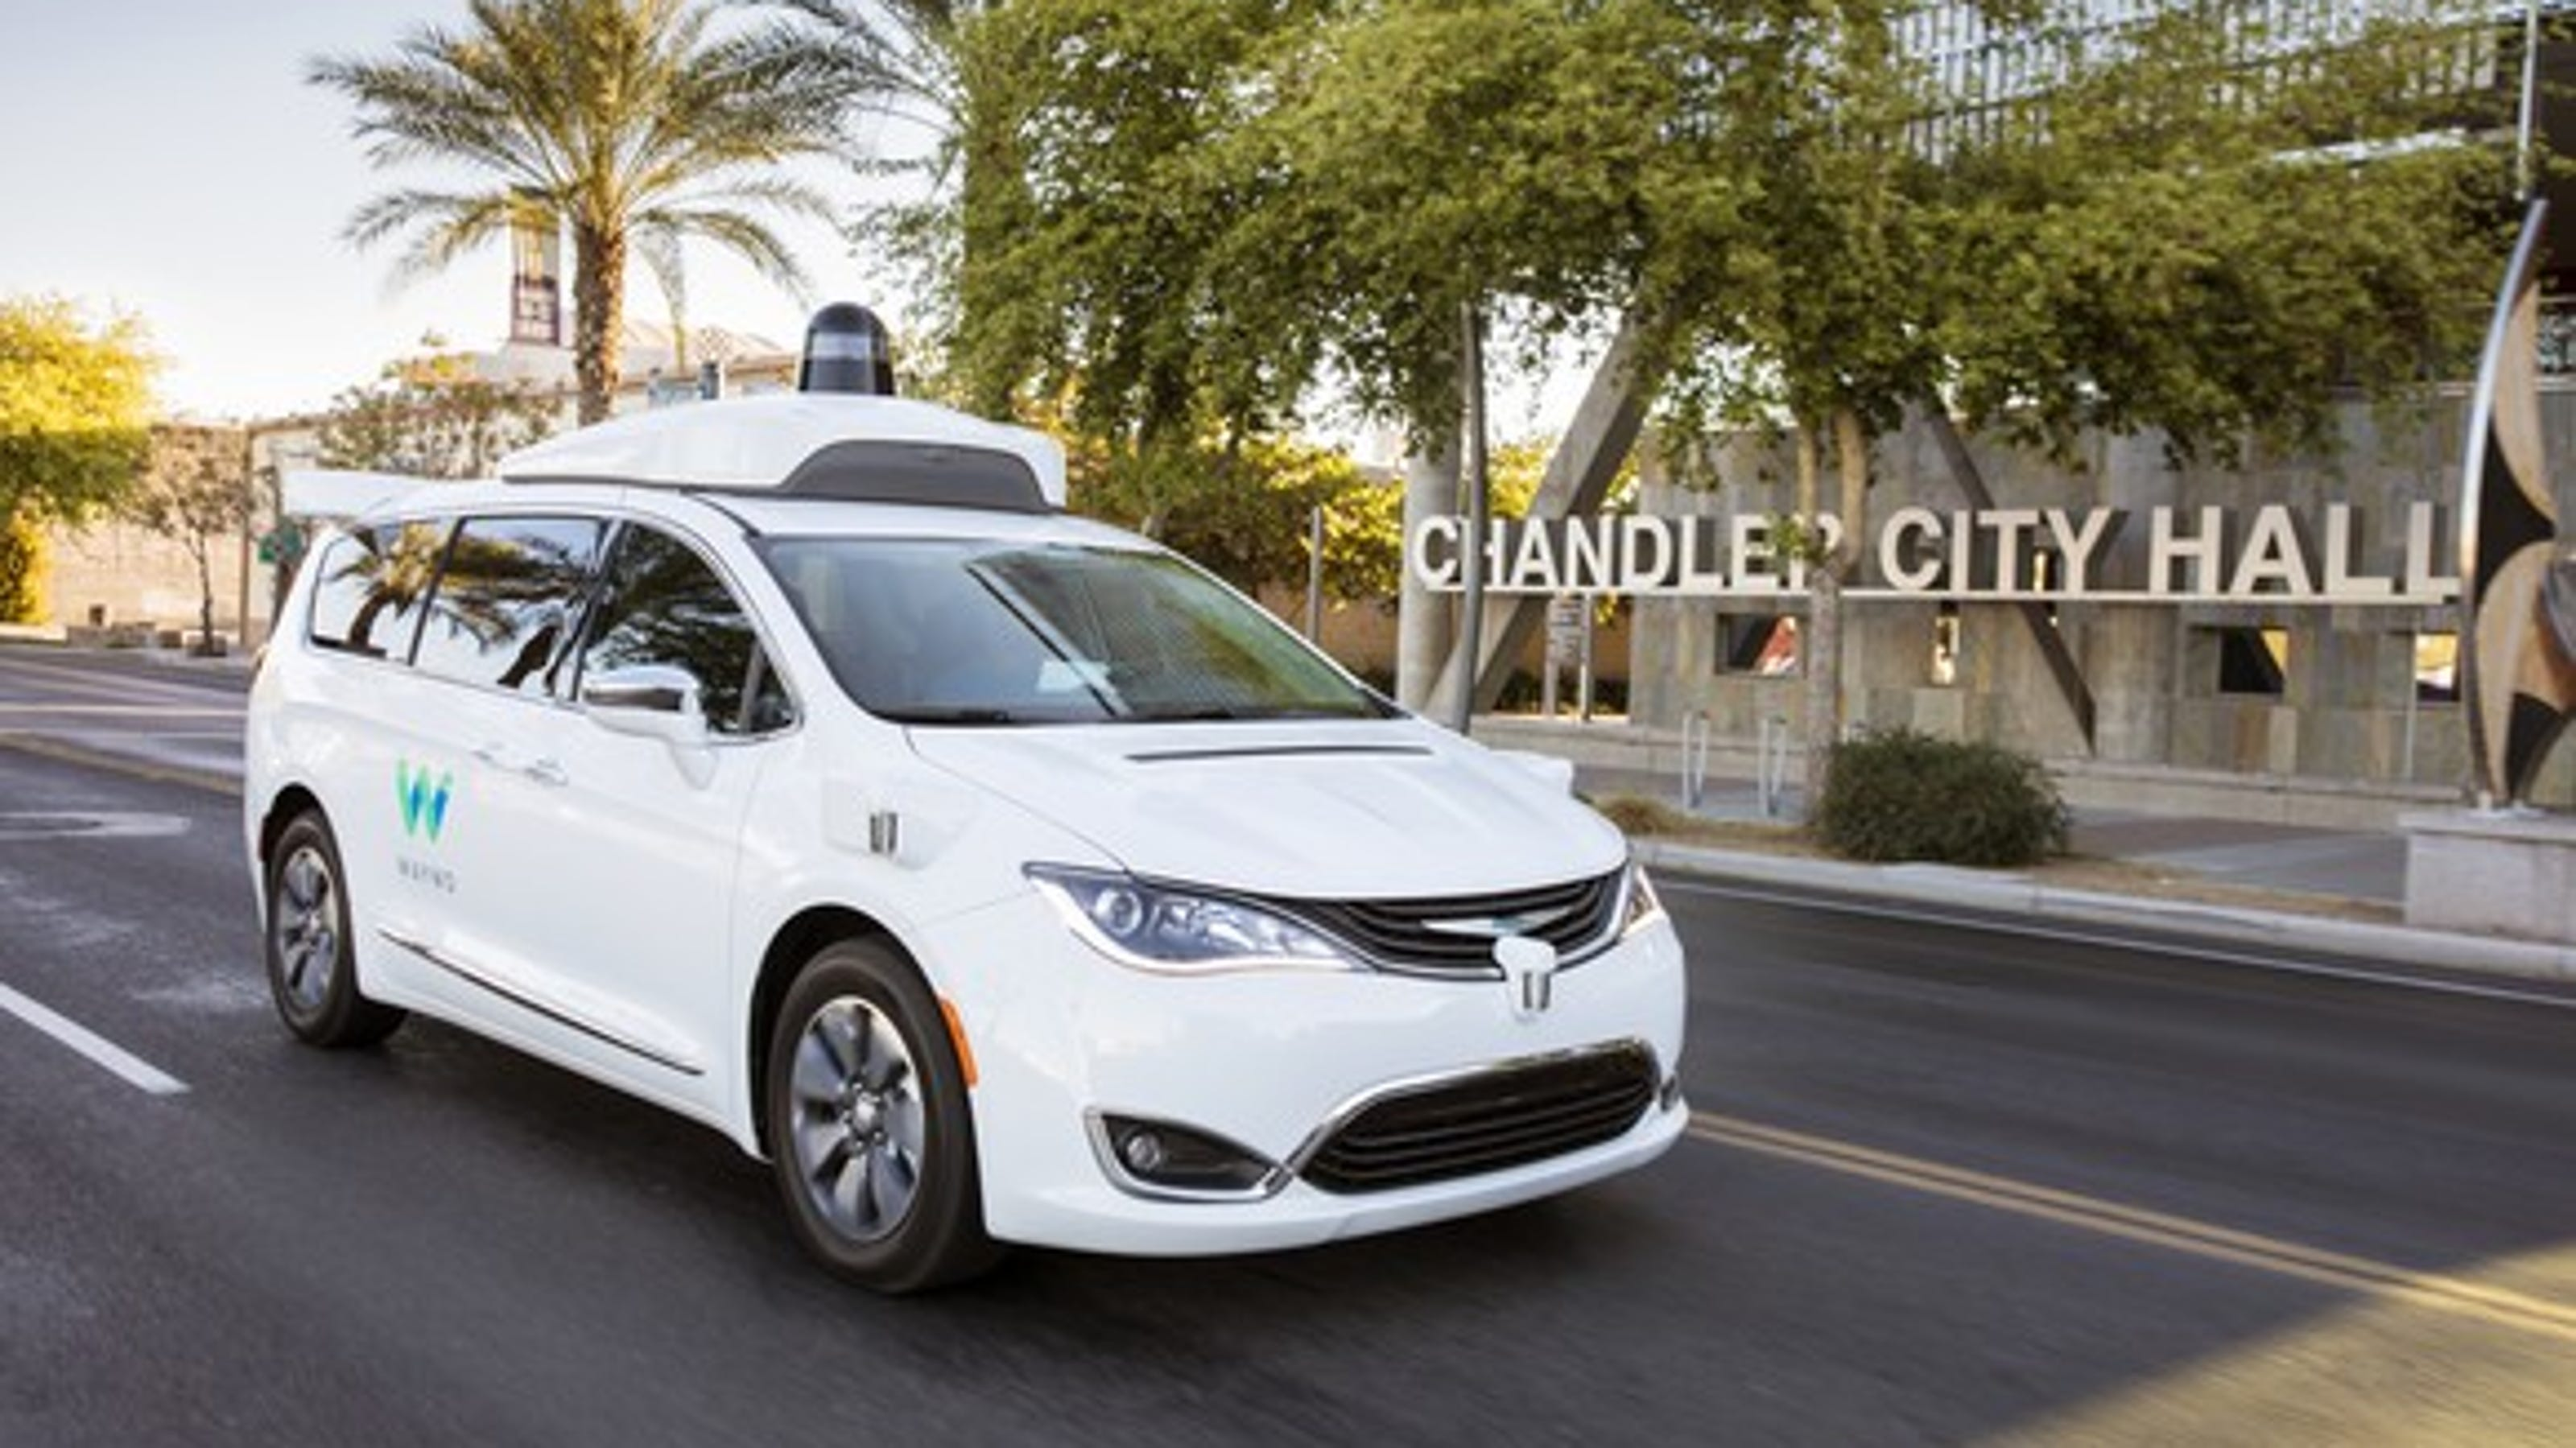 waymo self-driving cars hit 10 million road miles before public debut